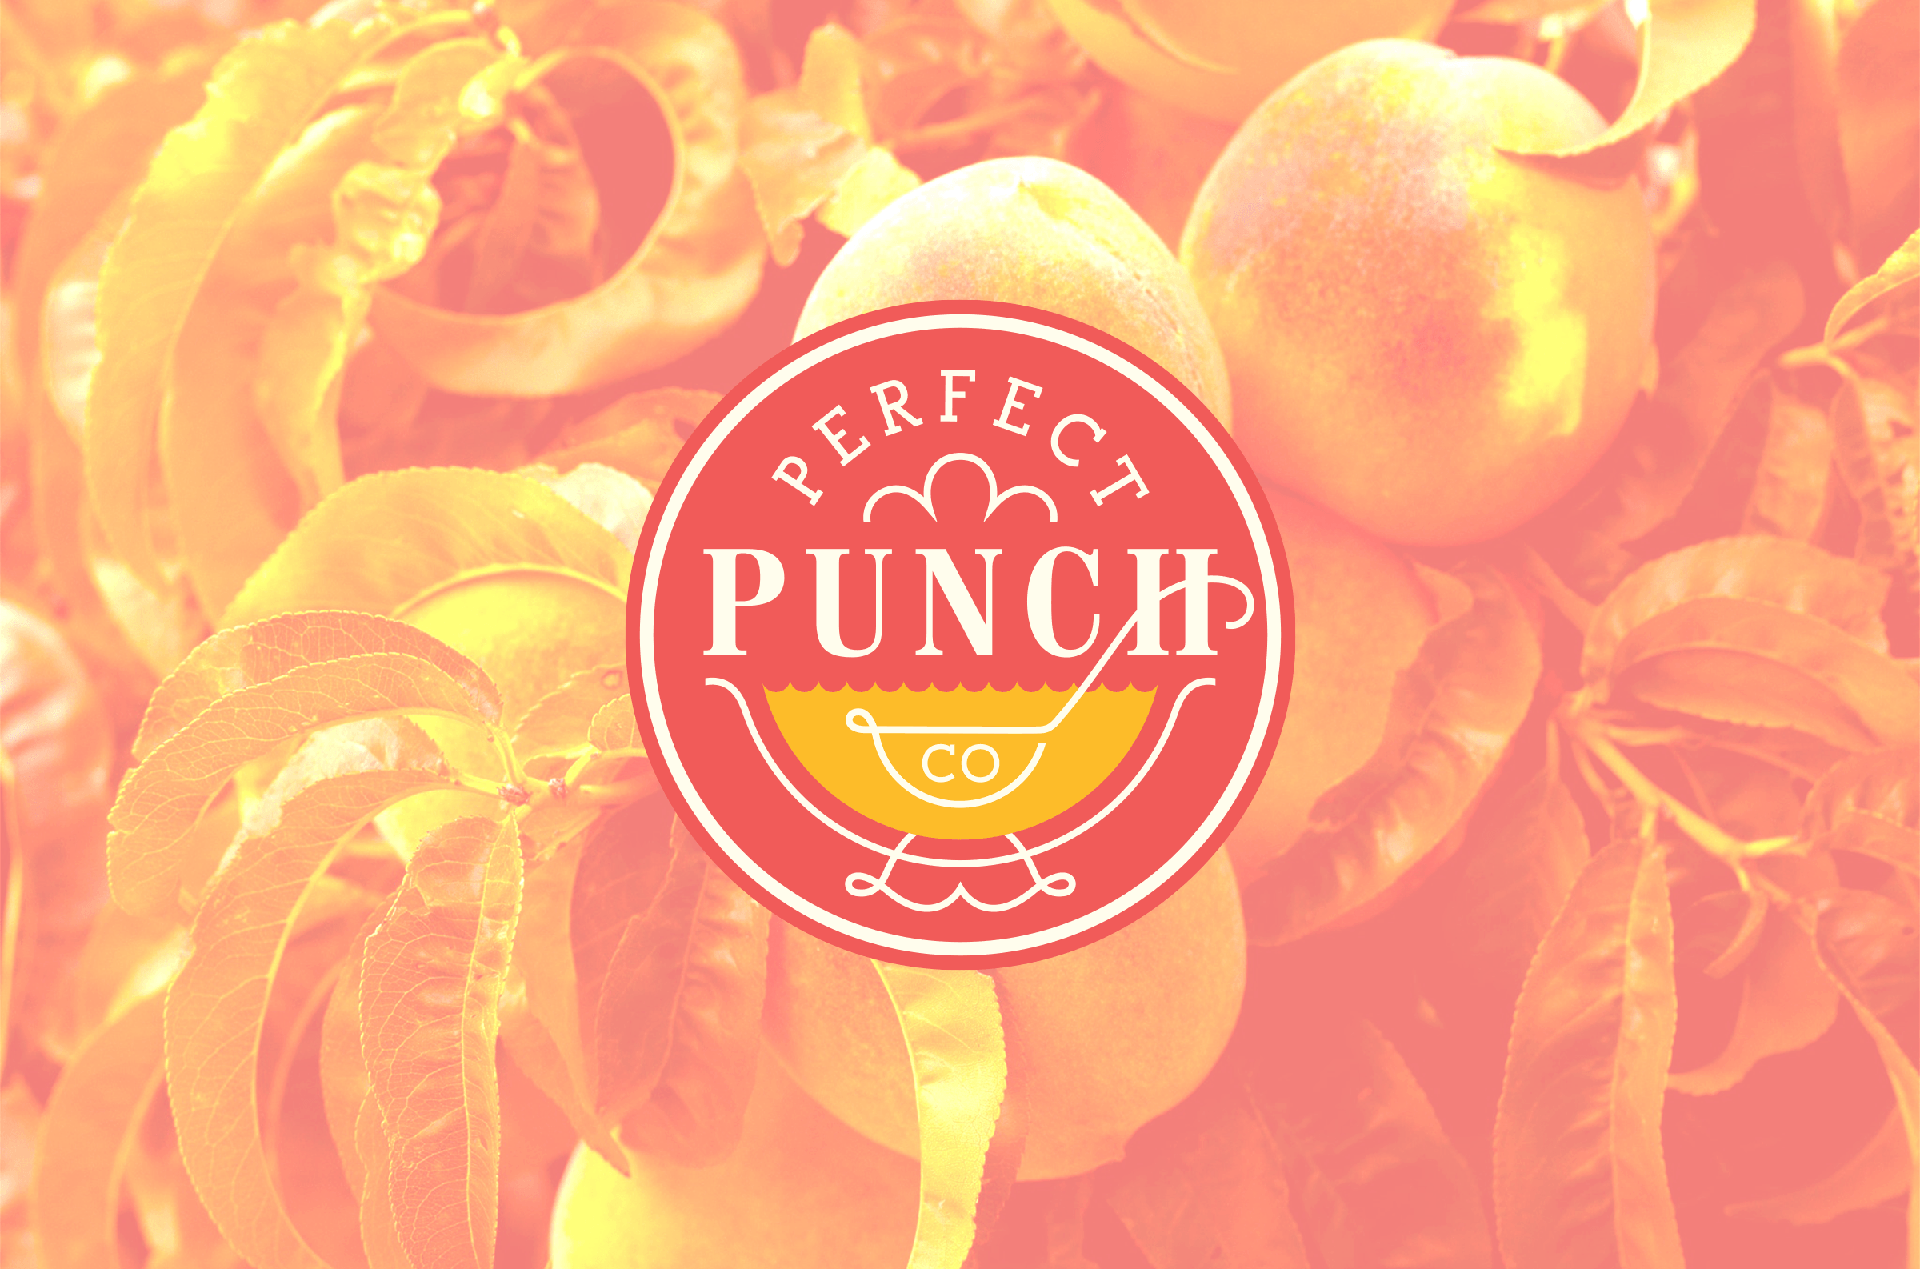 1_web_perfectpunch_1